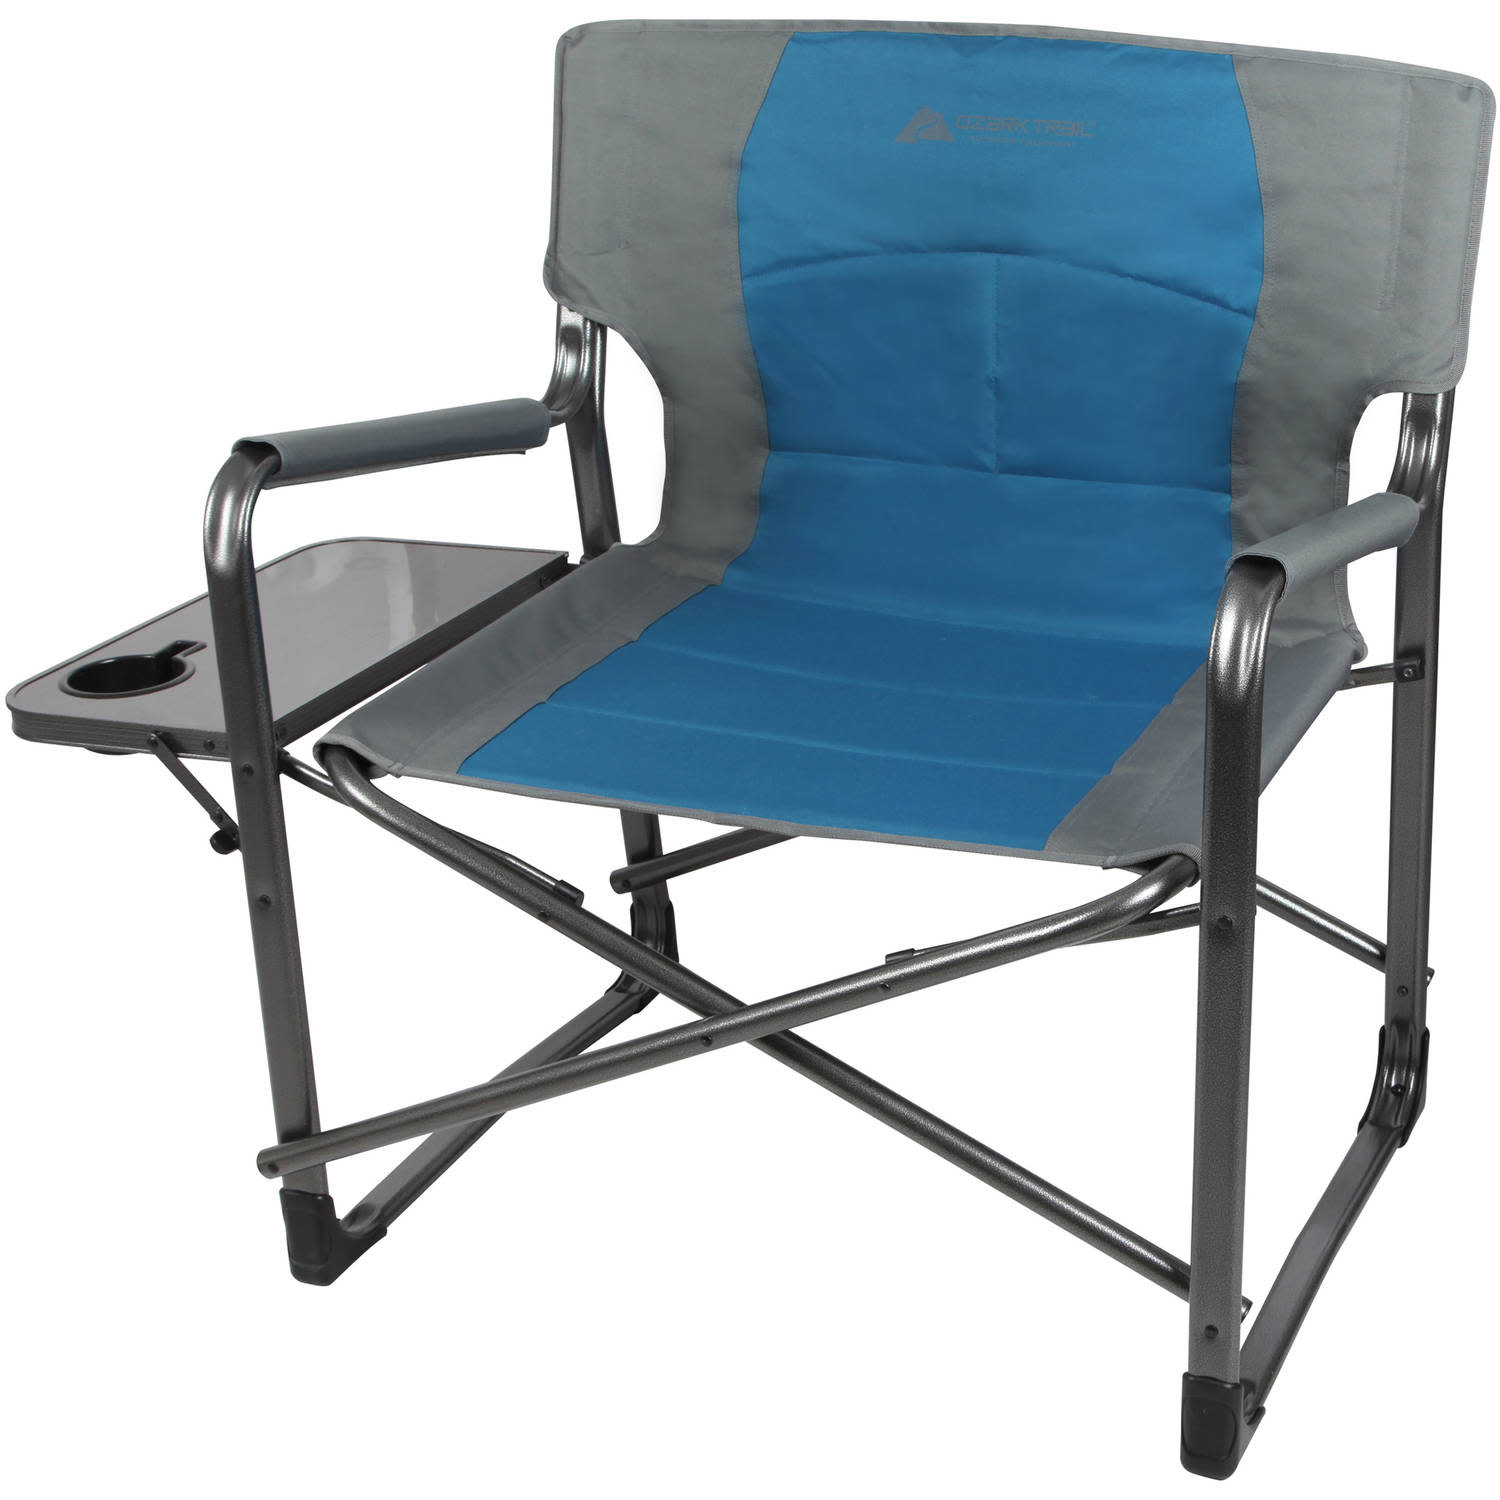 Oversized Camping Chairs Patio Outdoor Fishing Armrest Seat